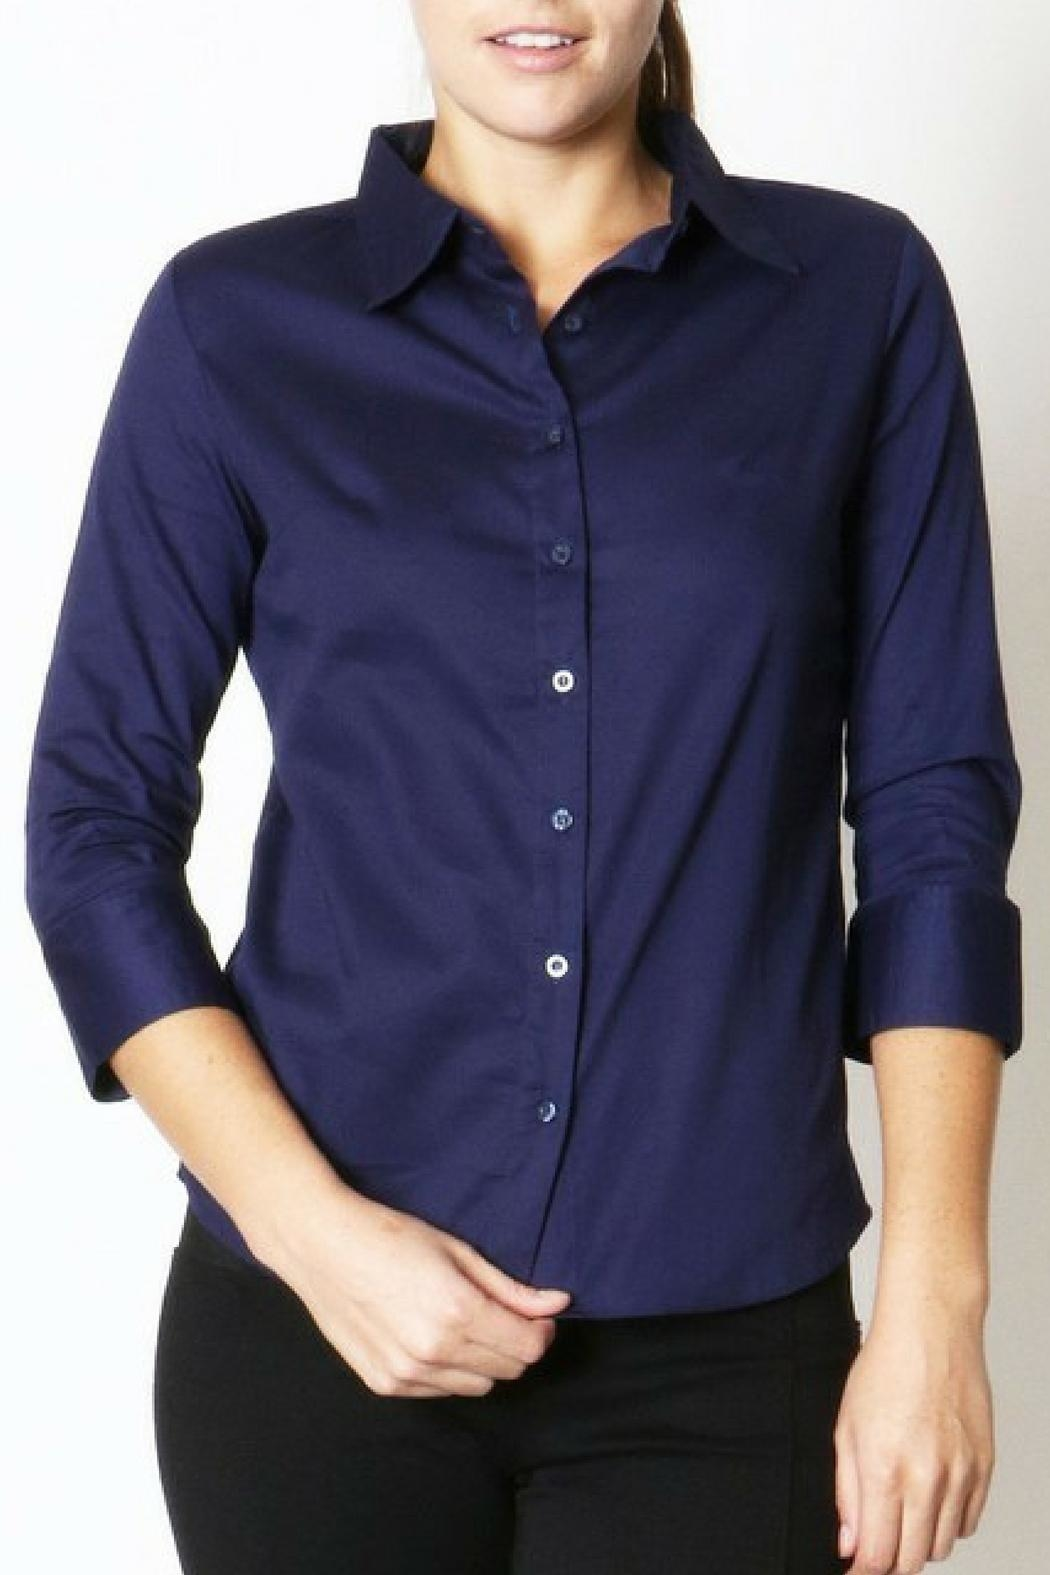 Zenana Outfitters Navy Button-Up Blouse - Main Image